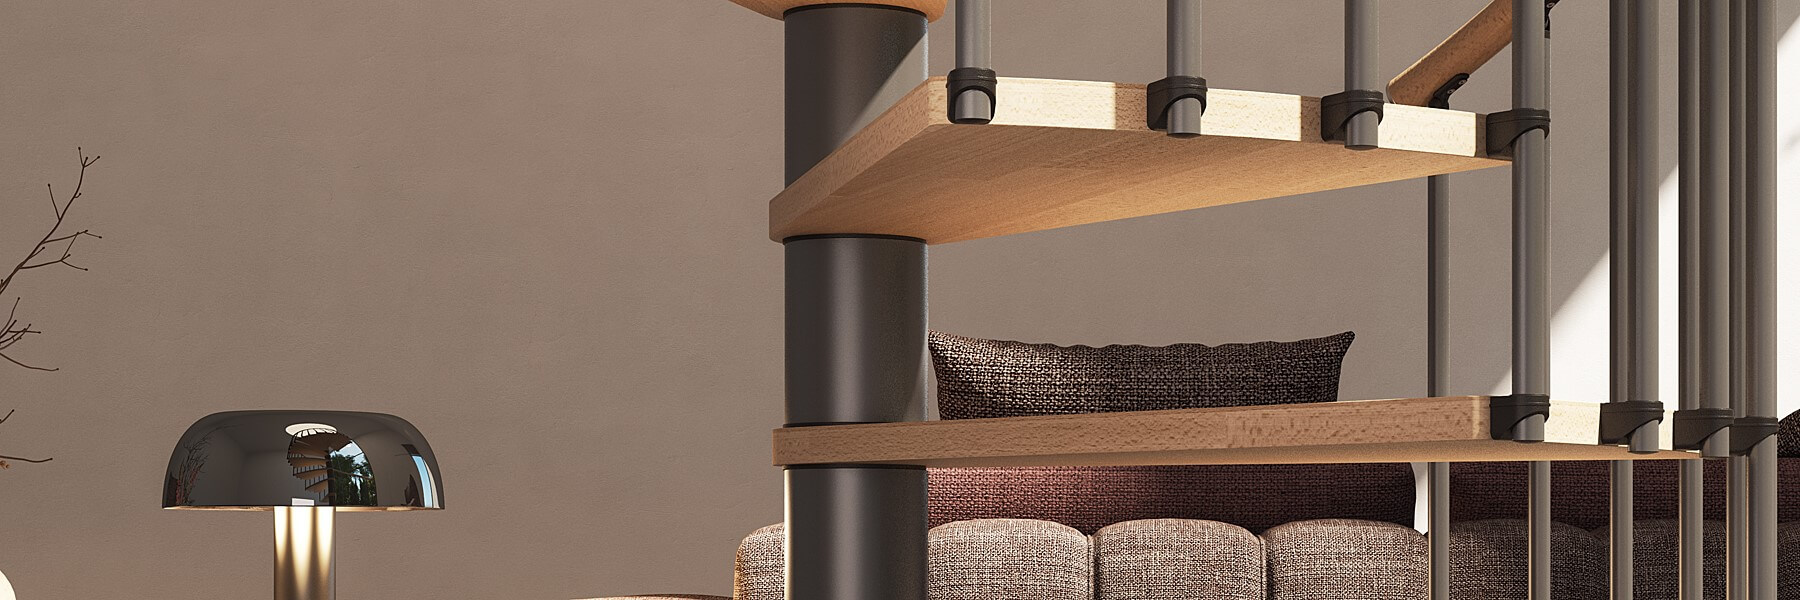 Picture of: Spiral Stairs Direct Uk Spiral Staircase Kits Store Buy Online